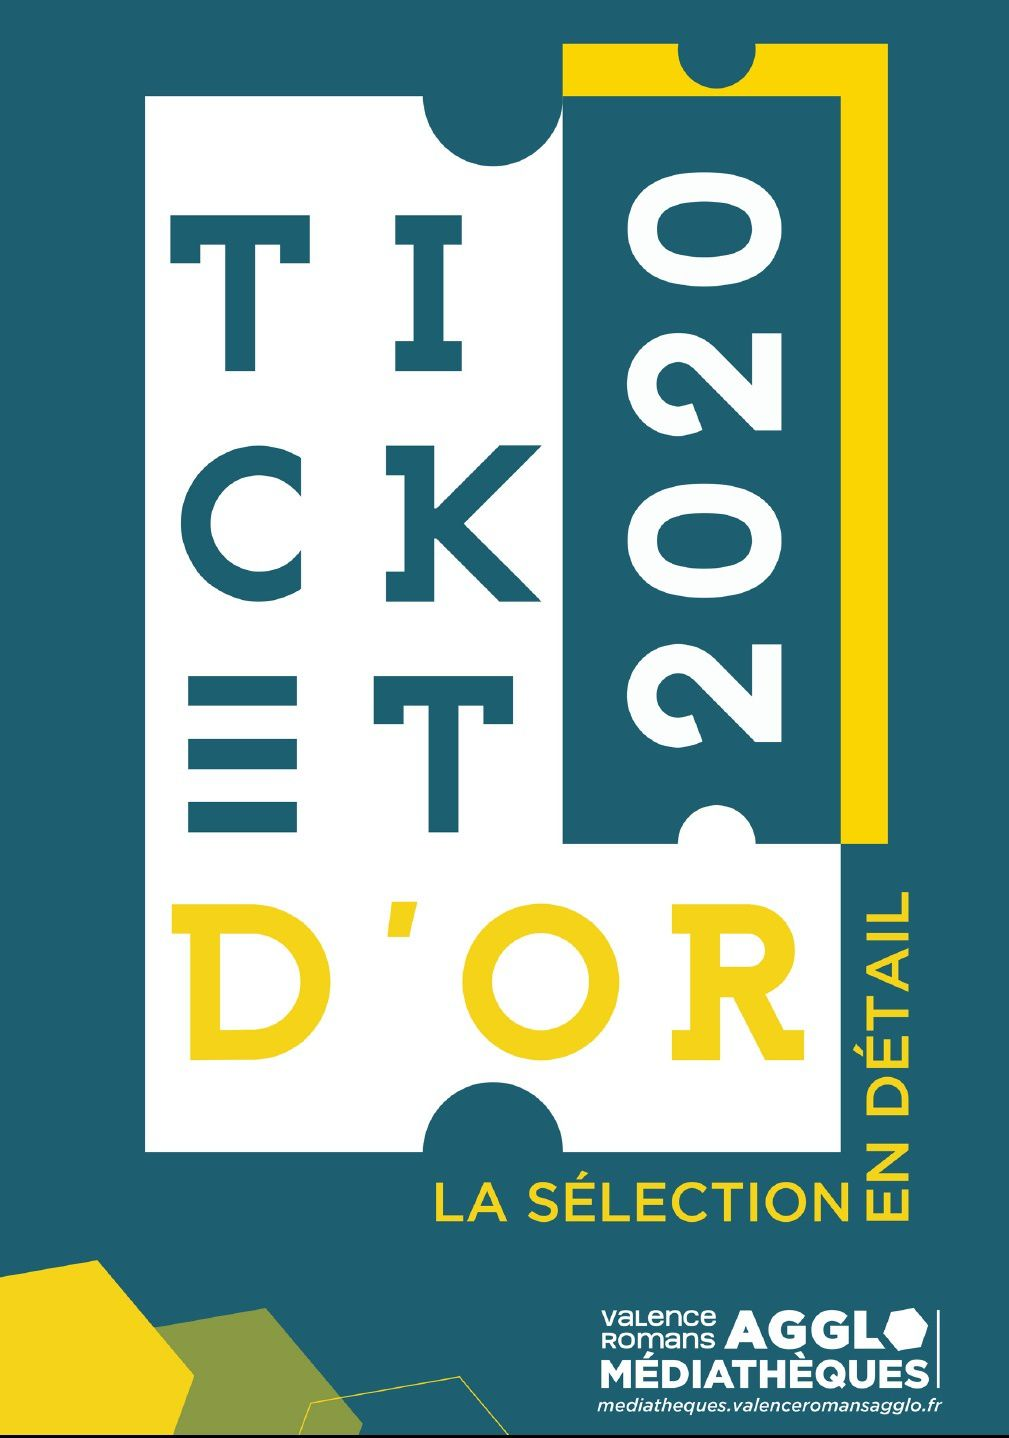 Tickets d'or 2020